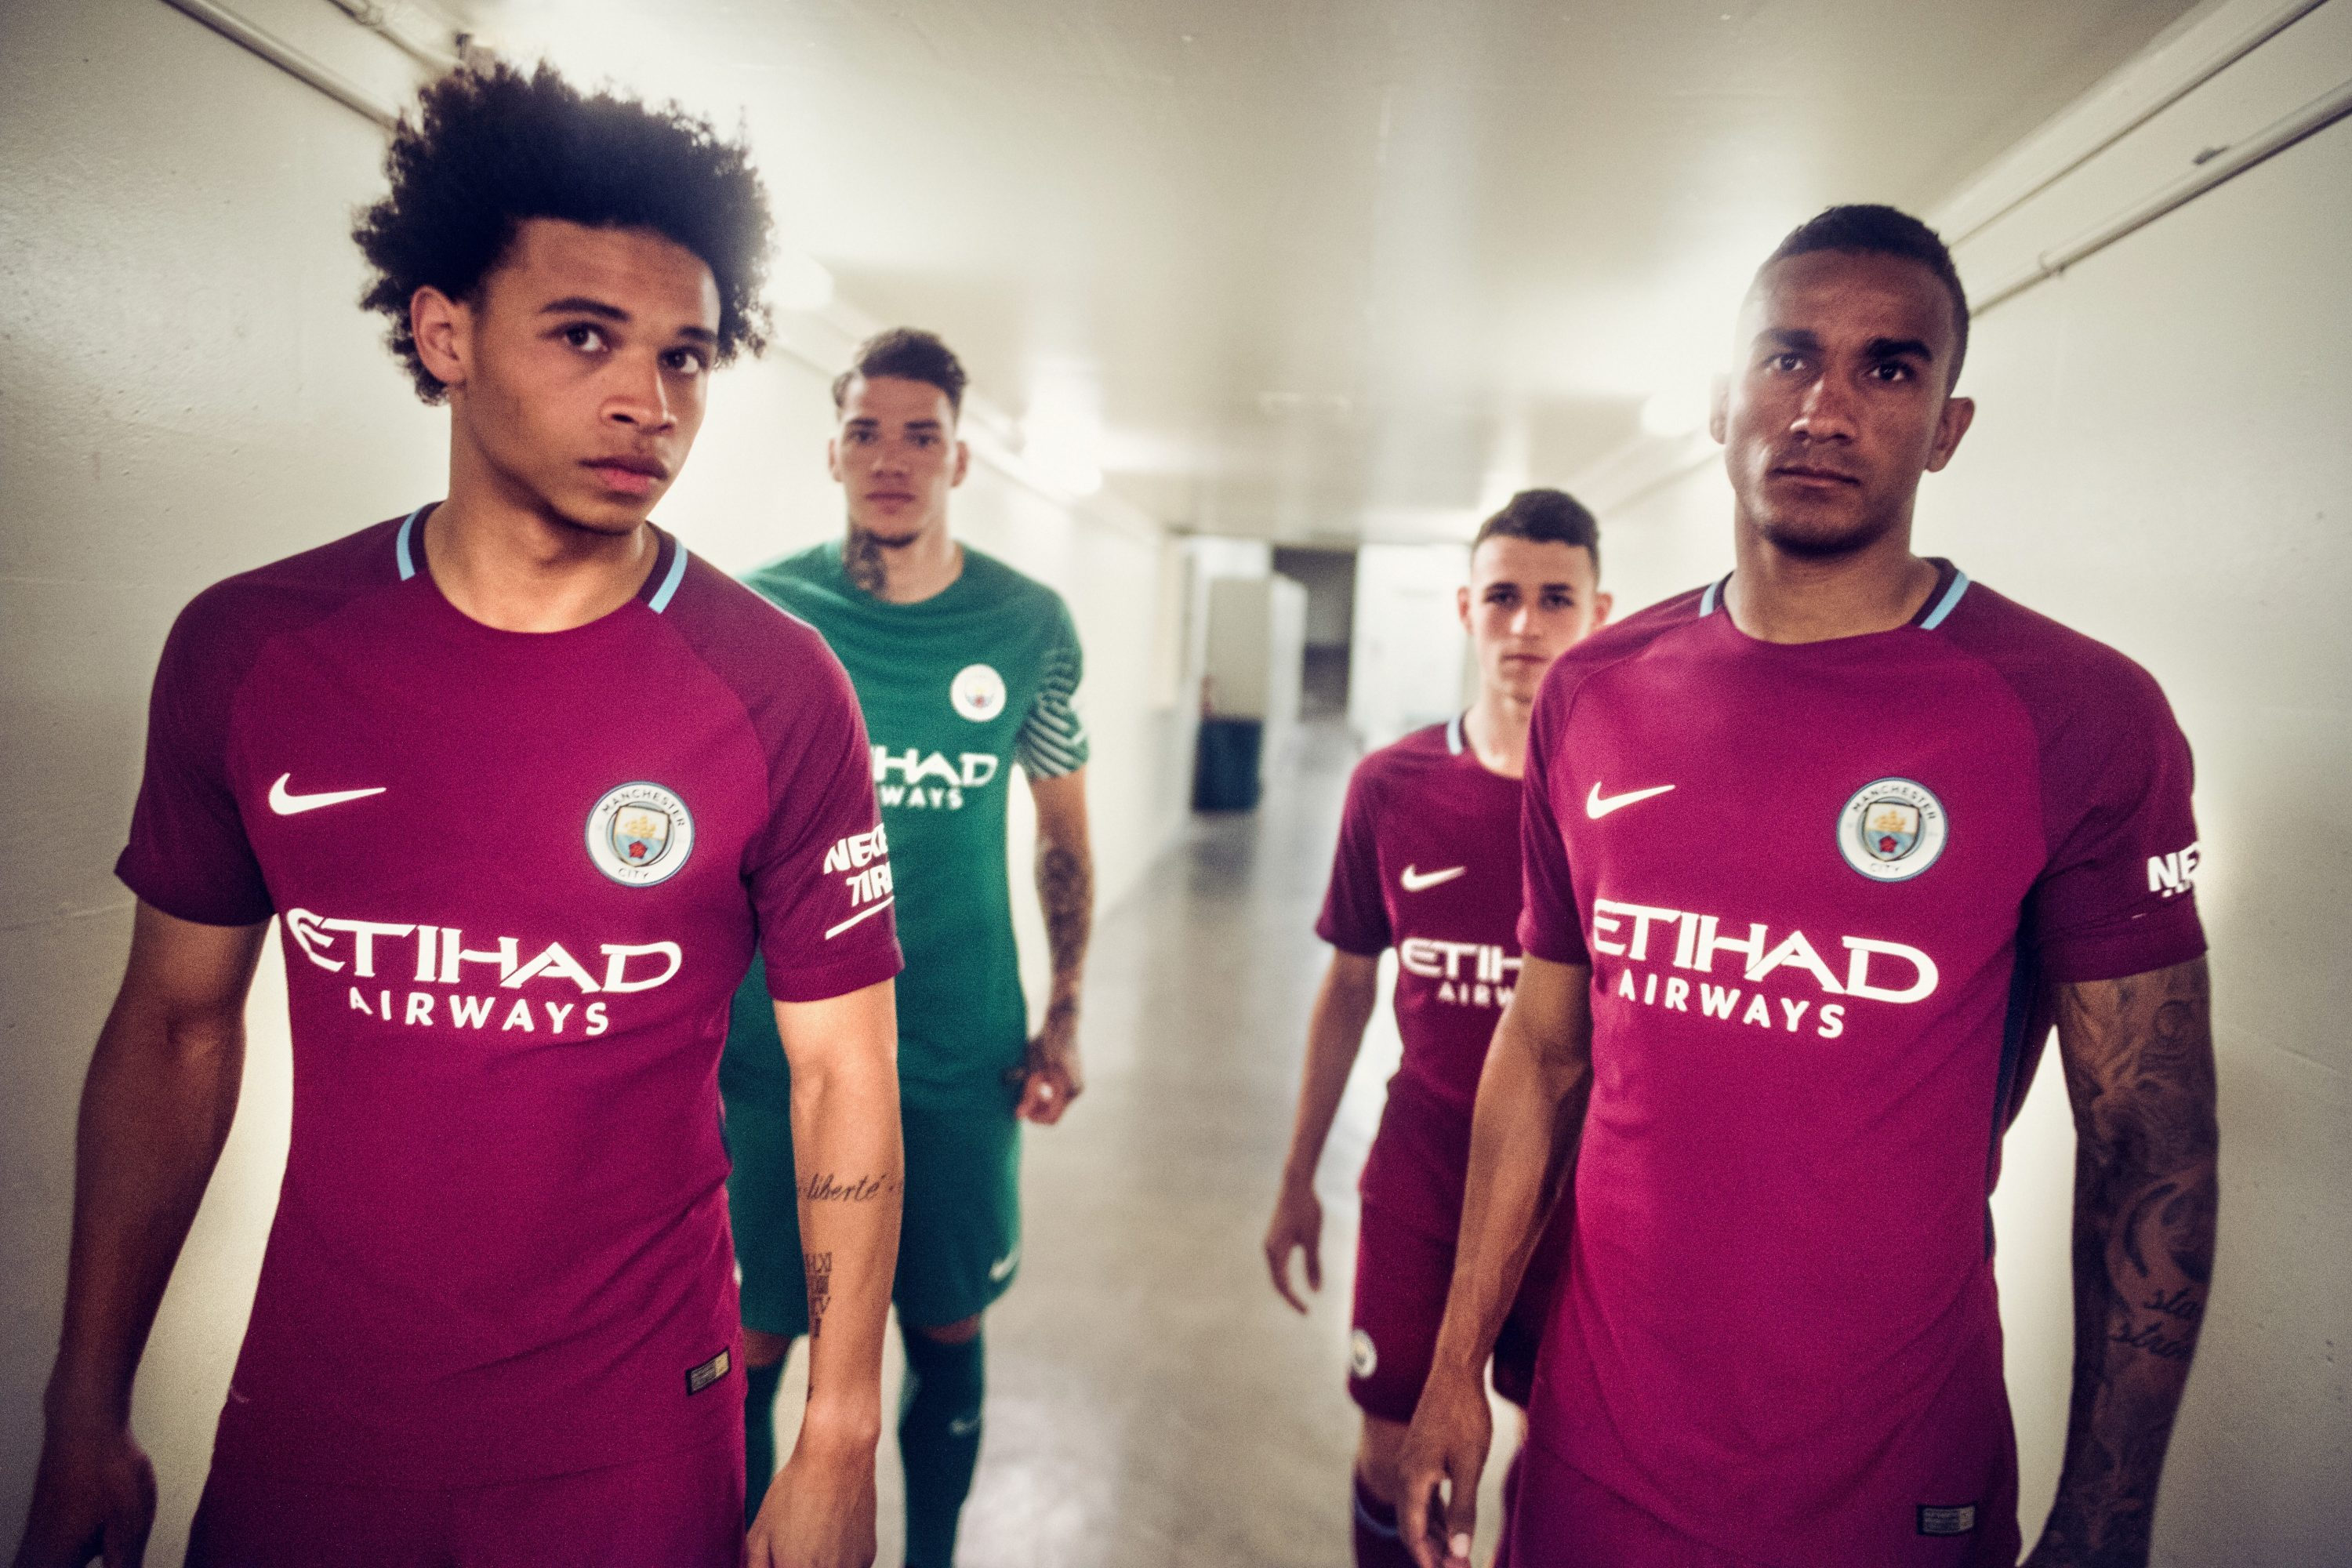 finest selection 180fa 74821 Nike and Manchester City Unveil Away Kit for 2017/18